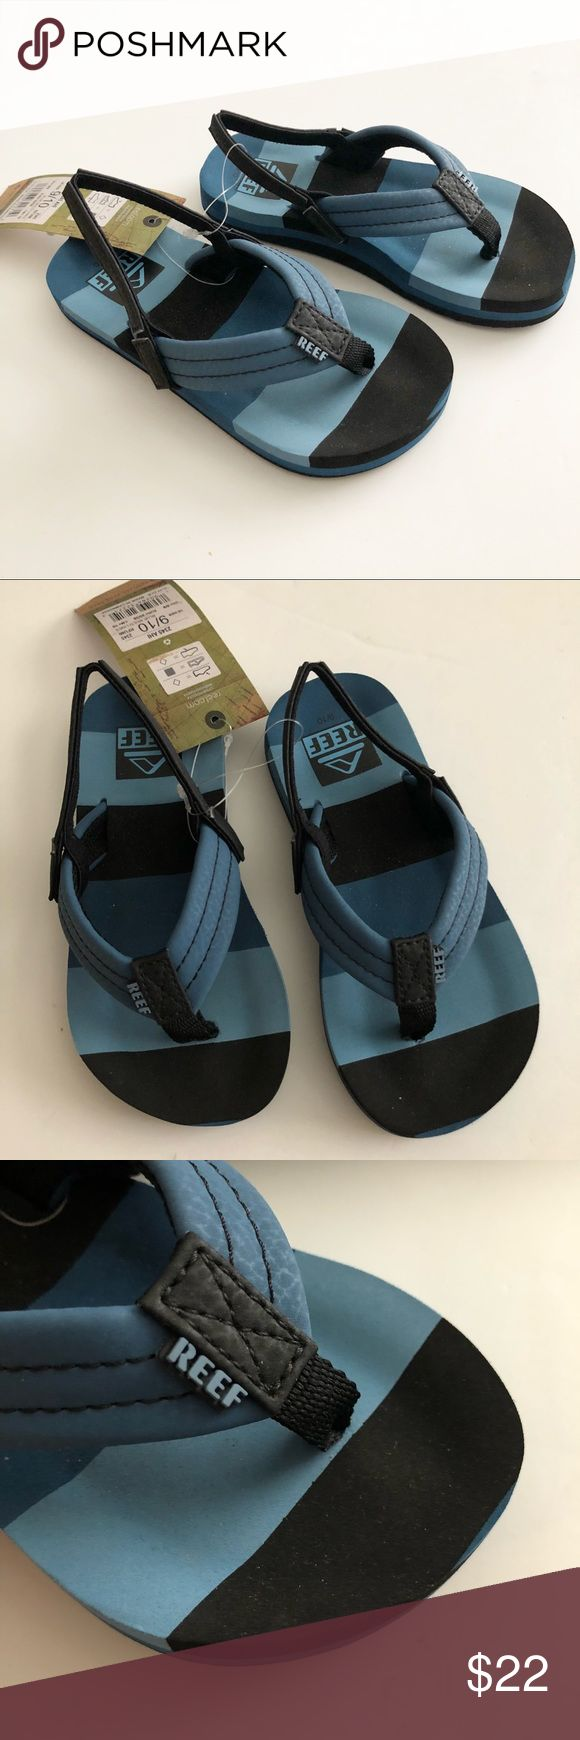 NWT! Reef flip flops NWT! Reef flip flops with stretchy back strap. Size 9/10 Reef Shoes Sandals & Flip Flops